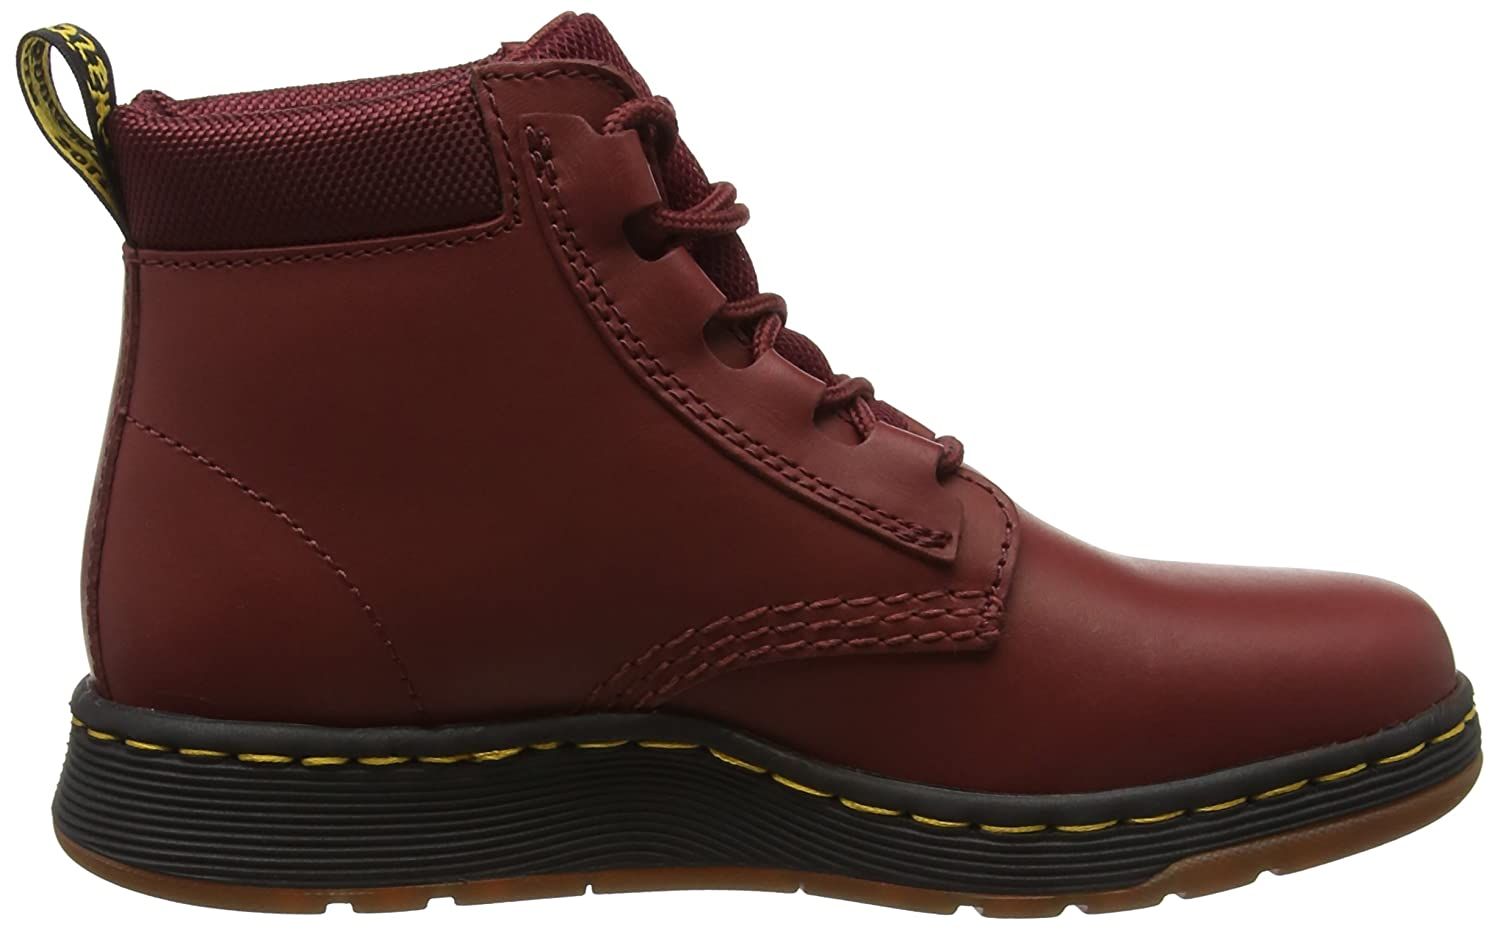 Dr. Martens Women's Telkes Fashion Boot B01MZ70I0A 5 Medium UK (7 US)|Cherry Red Temperley+sports Spacer Mesh